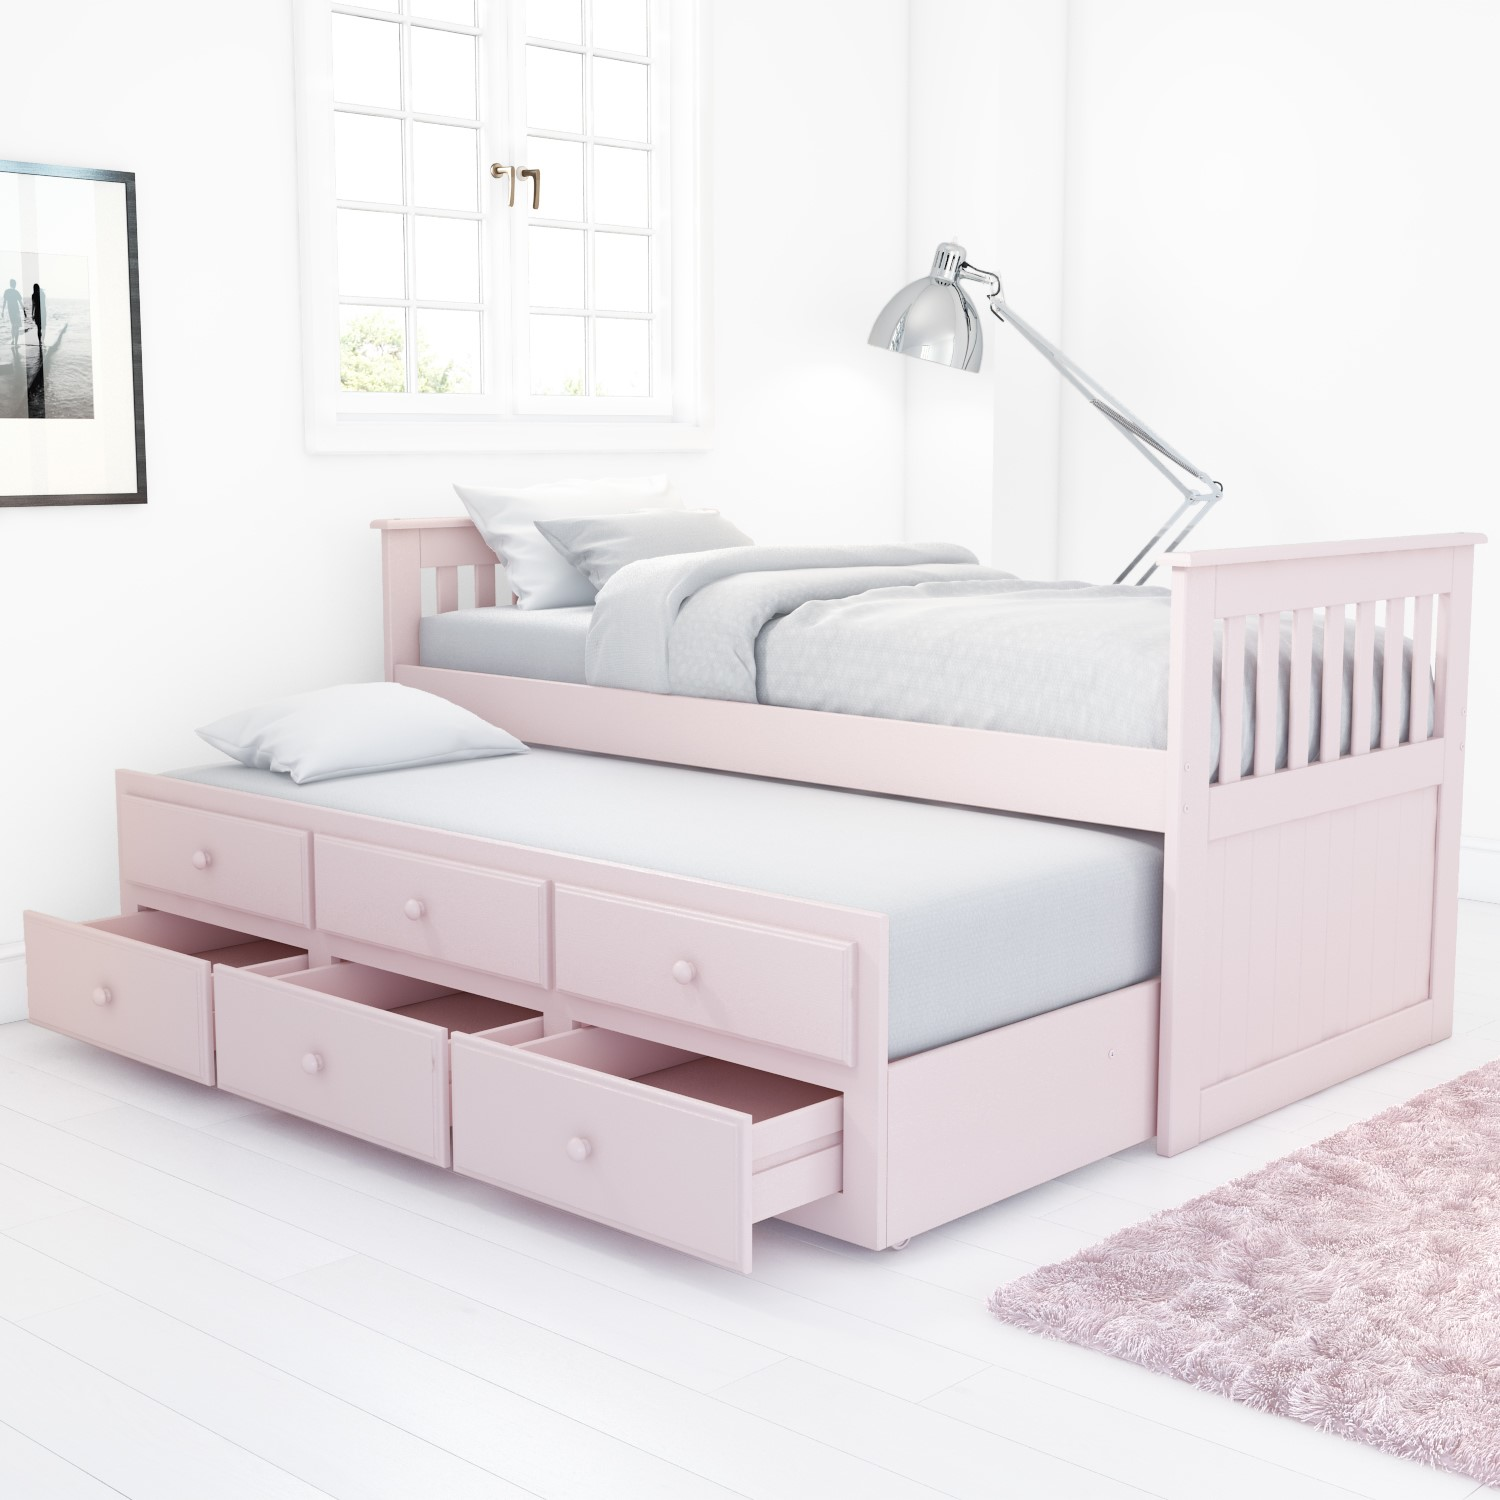 Oxford Captains Guest Bed With Storage In Light Pink Trundle Bed Included Furniture123